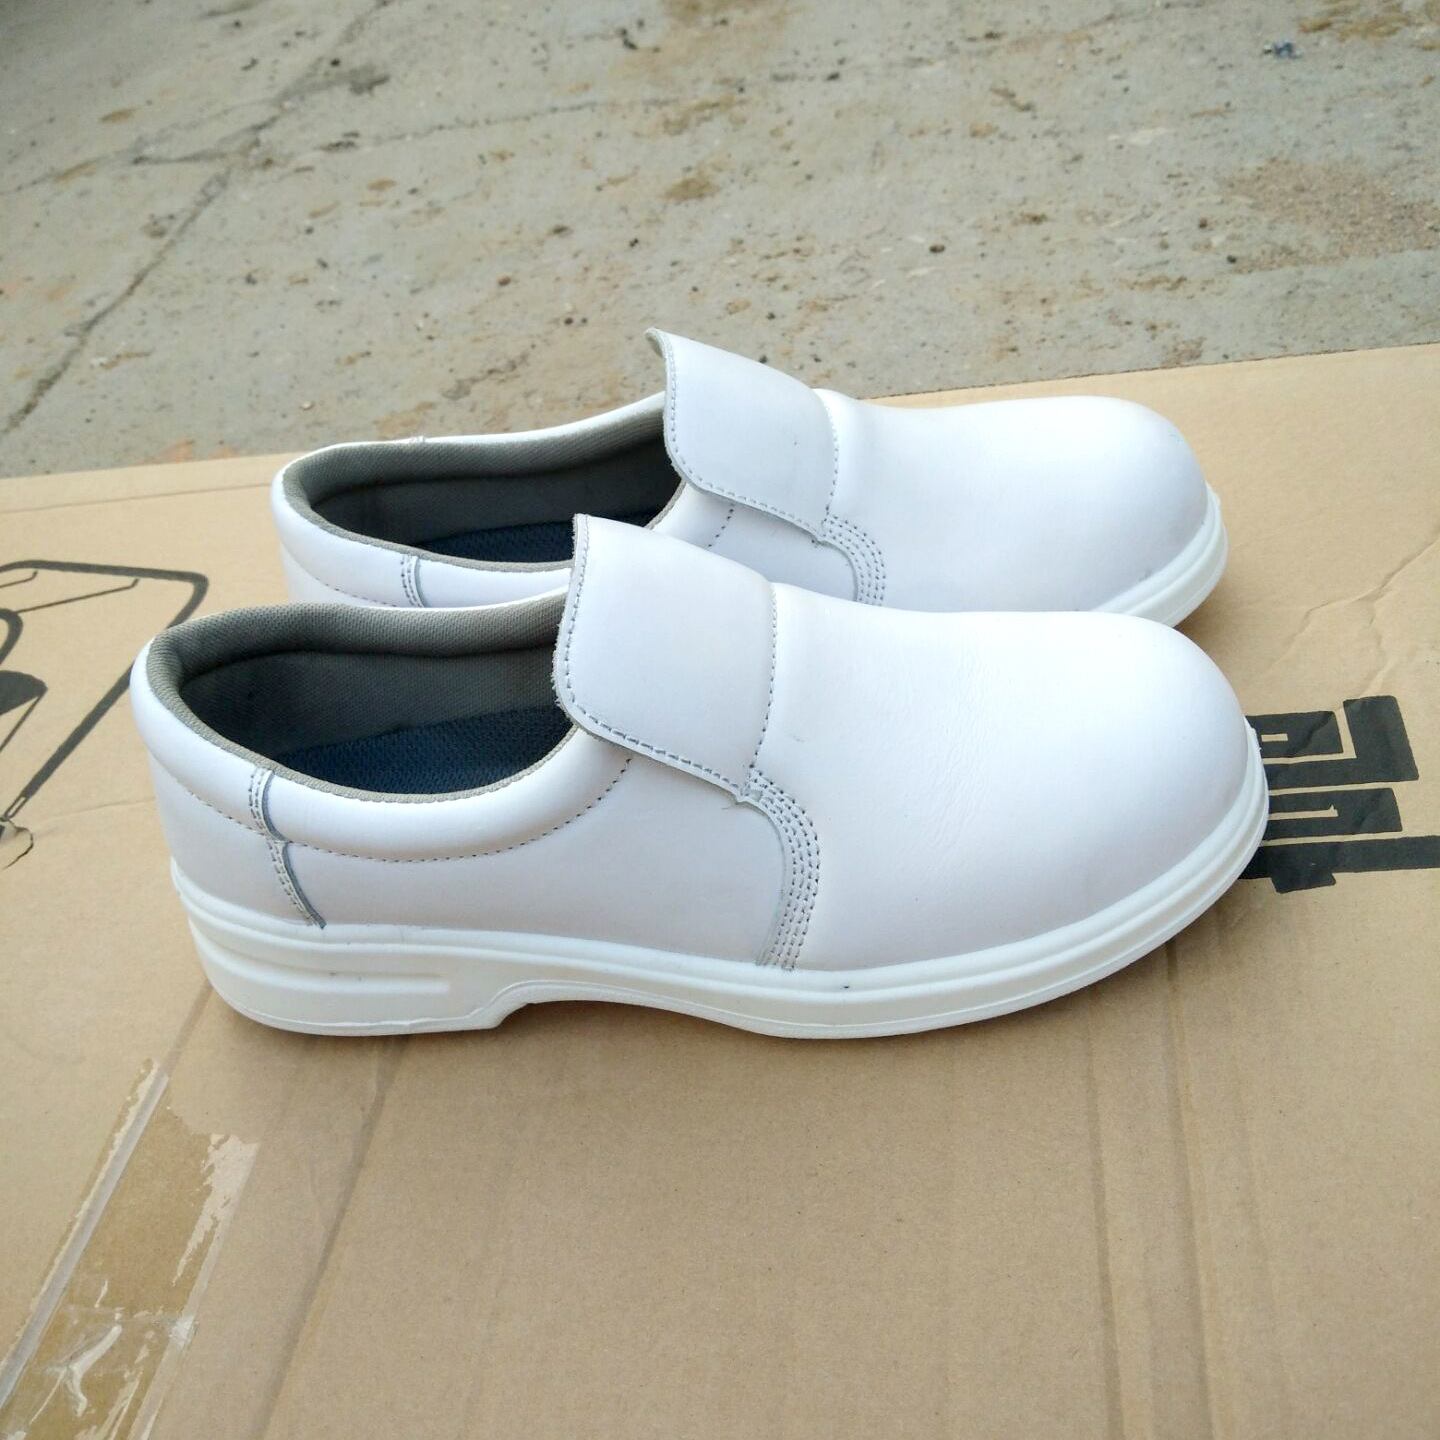 Manufacturers Wholesale Safety Shoes White Dust-free Workshop For Smashing Anti-static Shoes PU Bottom Round-Toe Protection Shoe